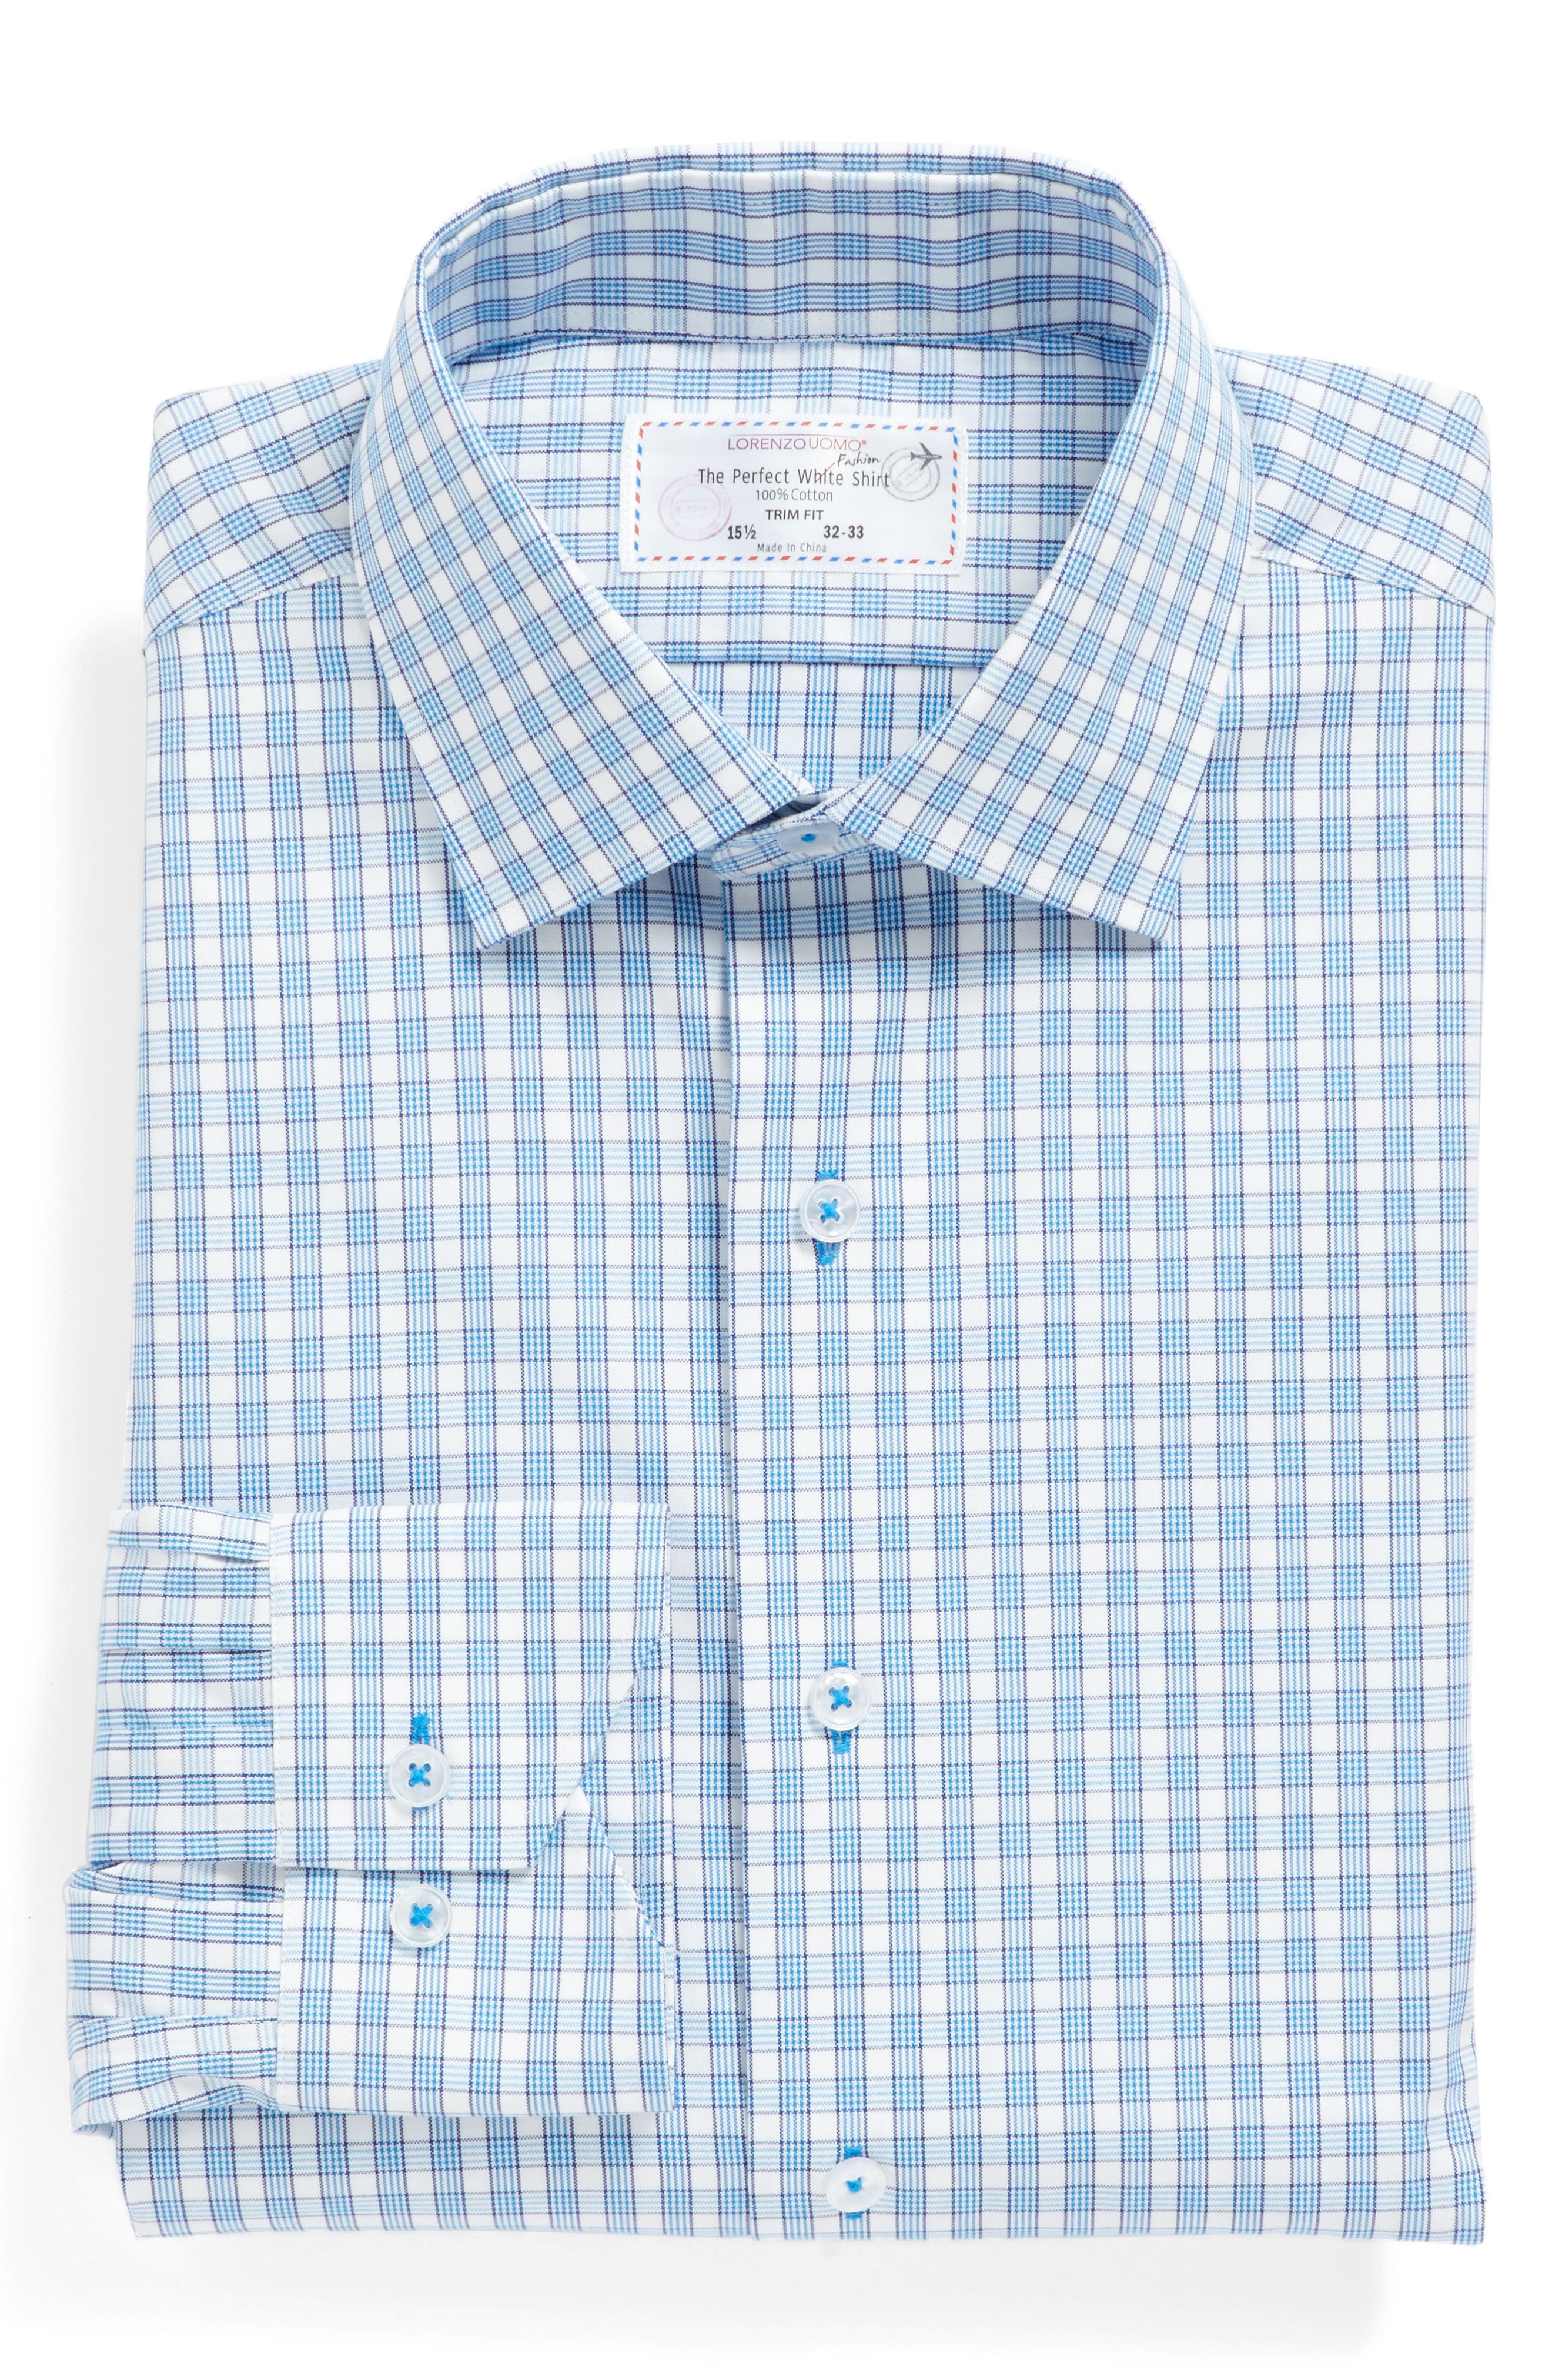 Trim Fit Plaid Dress Shirt,                             Alternate thumbnail 4, color,                             Light Blue/ White